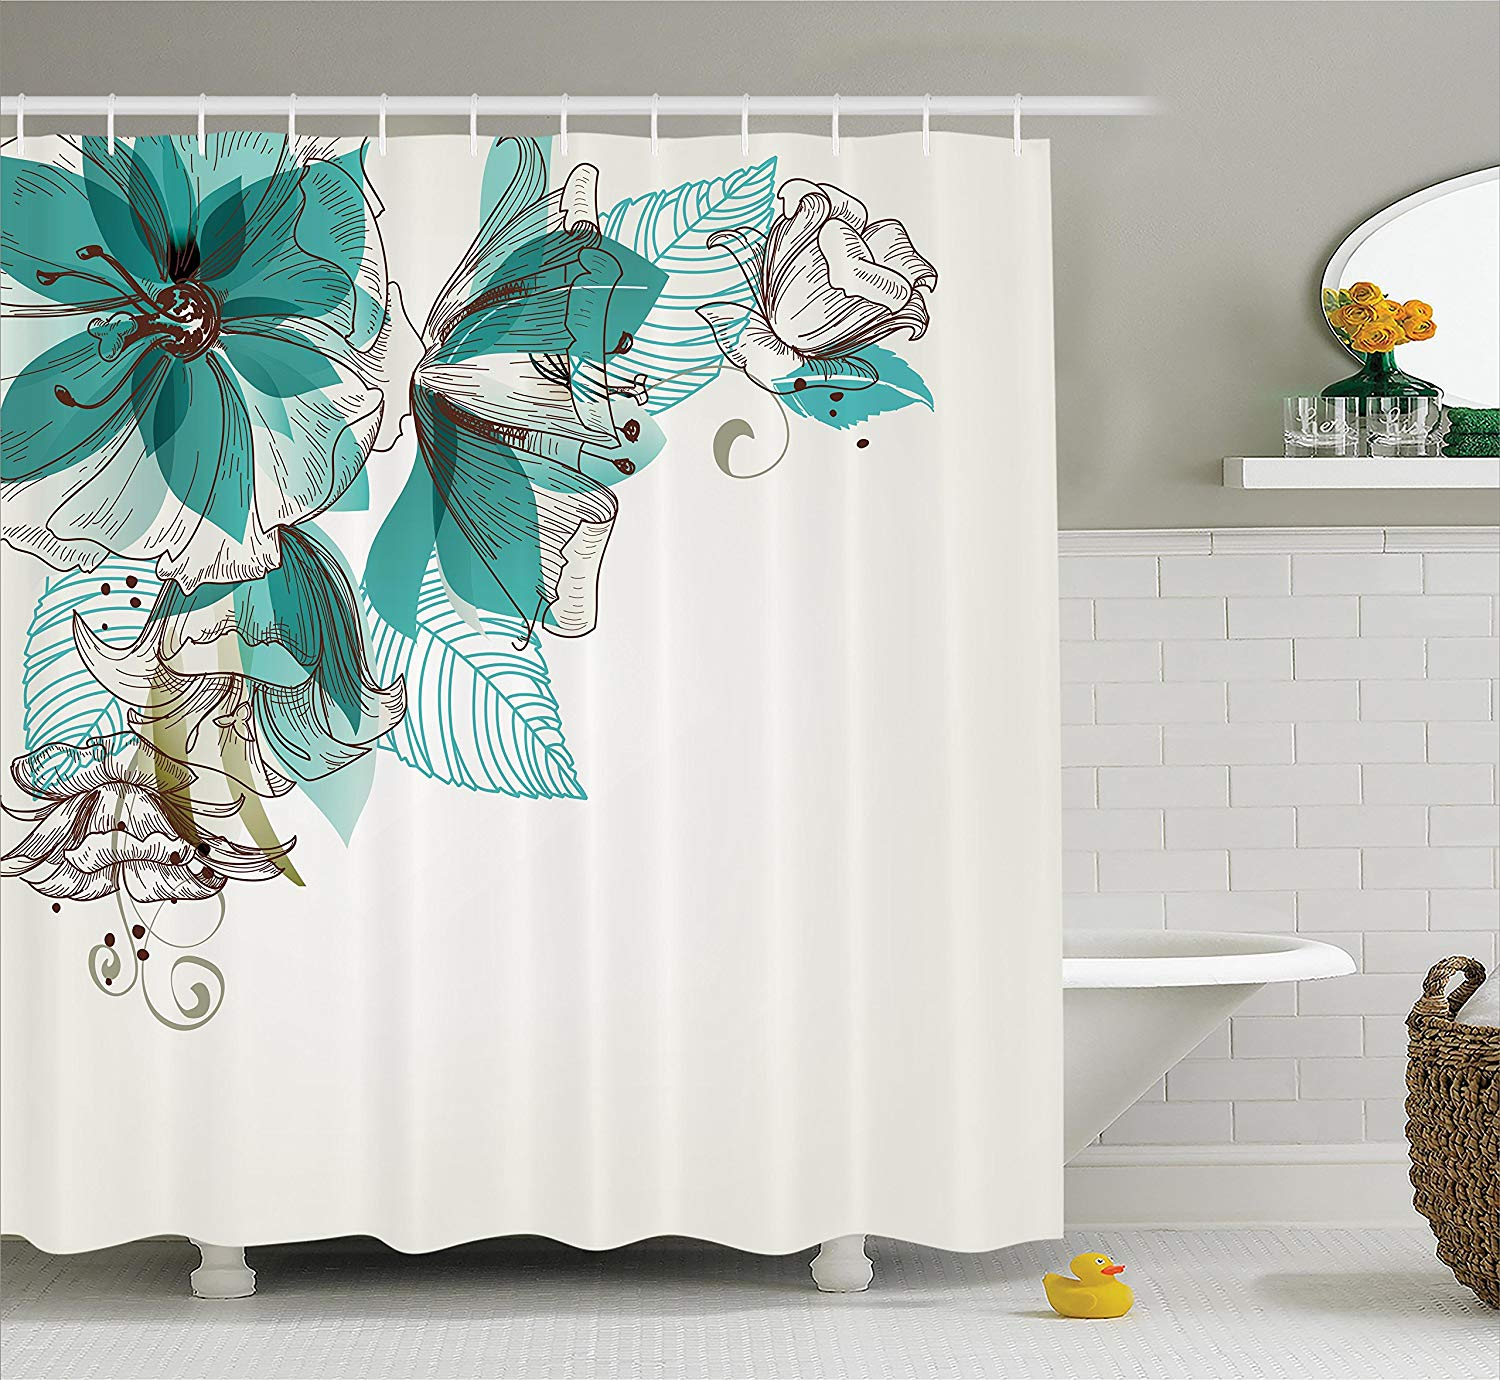 Picture of: Turquoise Shower Curtain Decor Flowers Buds Leaf At The Top Retro Art Polyester Fabric Bathroom Shower Curtain Set With Hooks Shower Curtains Aliexpress